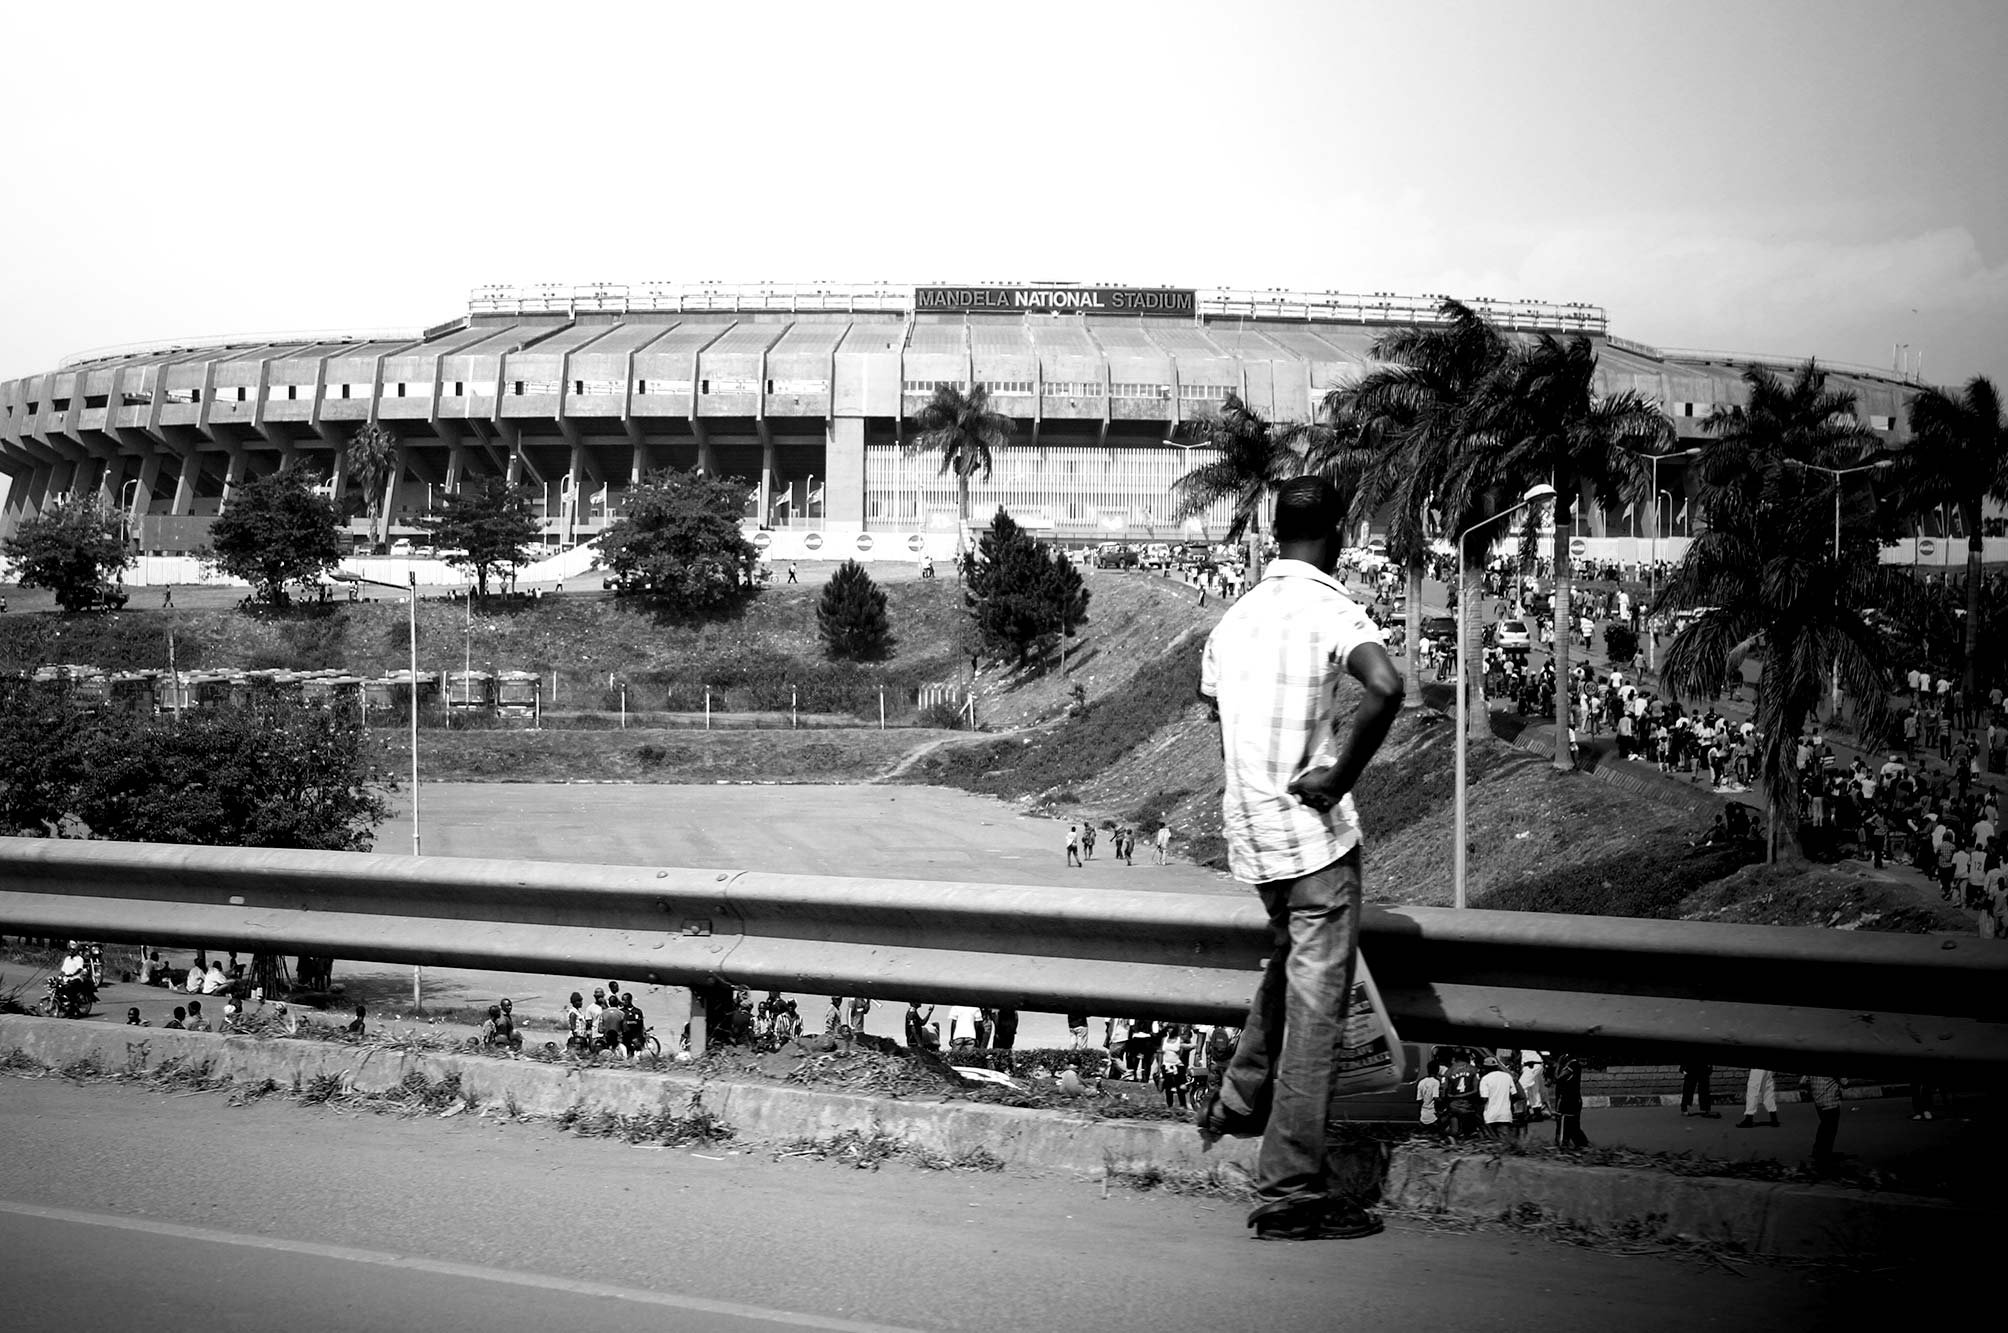 Mandela National Stadium, man looking out at the crowds